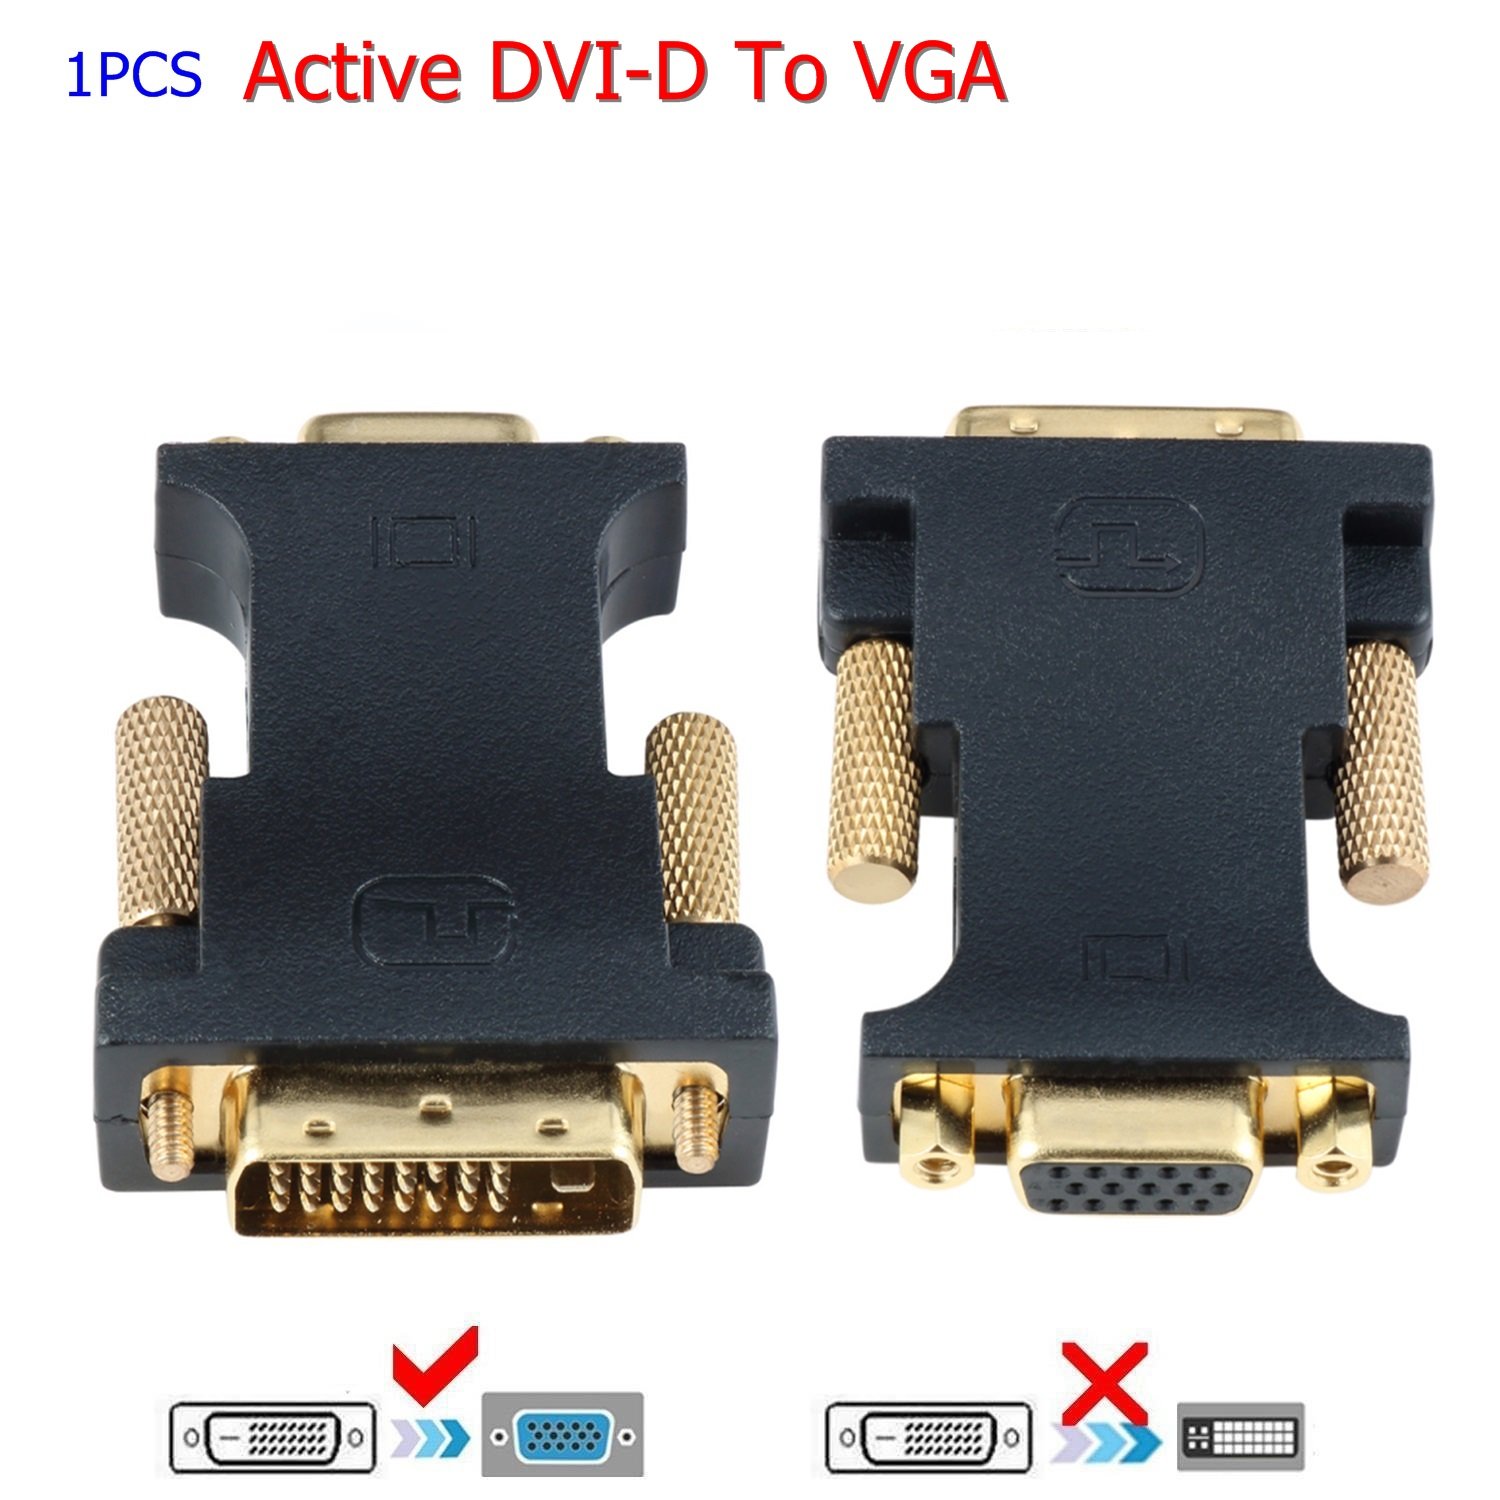 DVI D Male To VGA Female Socket Adapter Converter VGA to DVI//24+1 Pin Male to VGA Female Adapter Converter-Black-1 Size